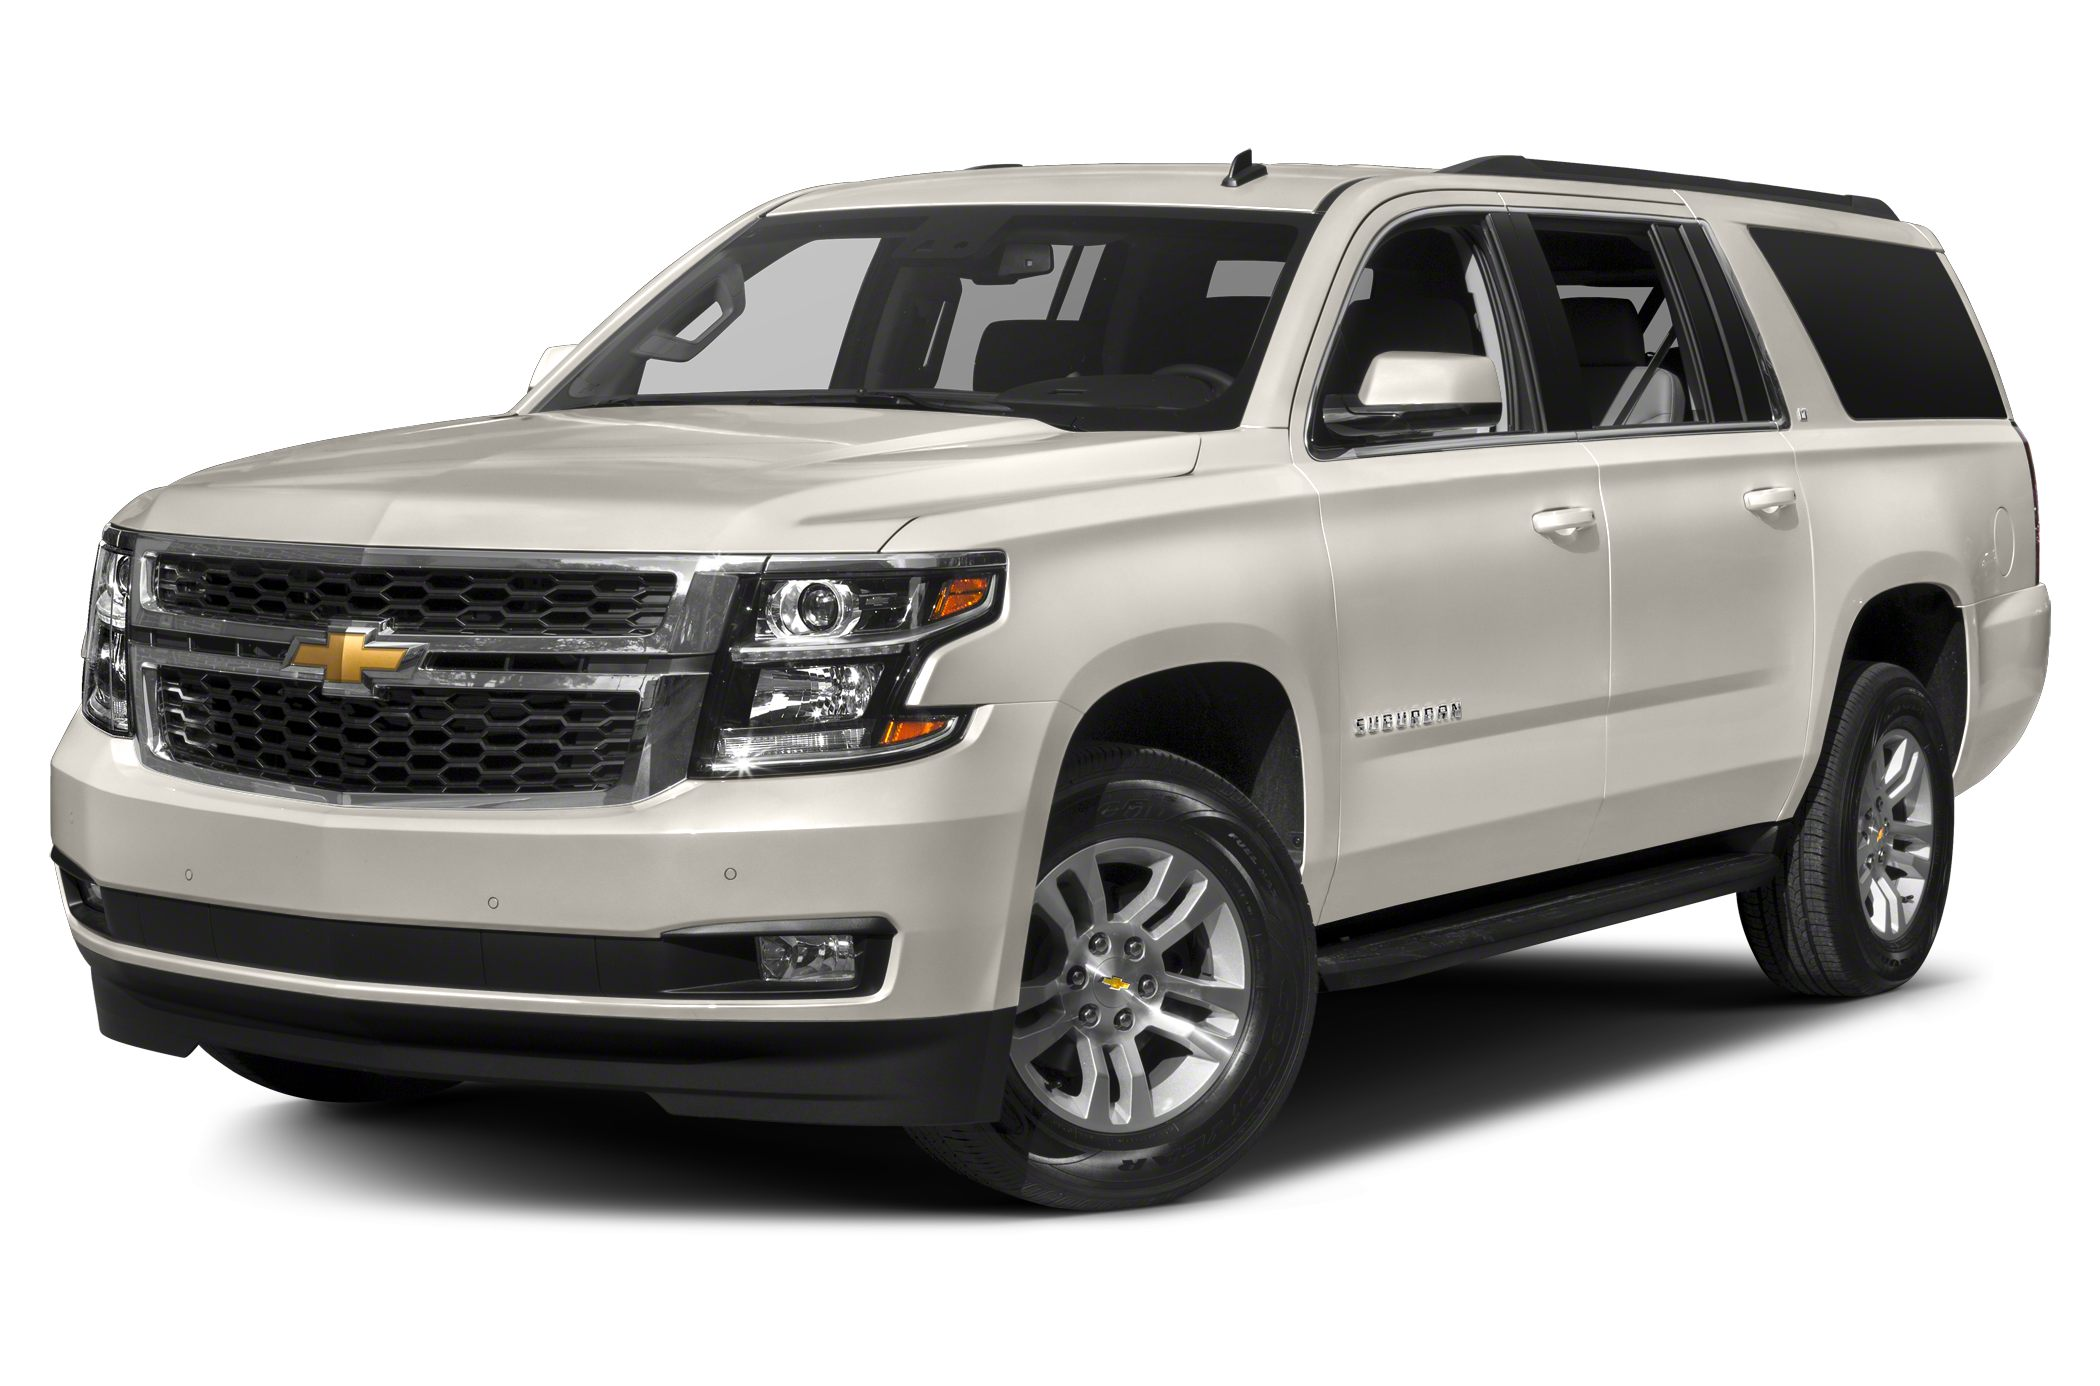 2015 Chevrolet Suburban 1500 LT SUV for sale in Cheraw for $49,988 with 20,933 miles.